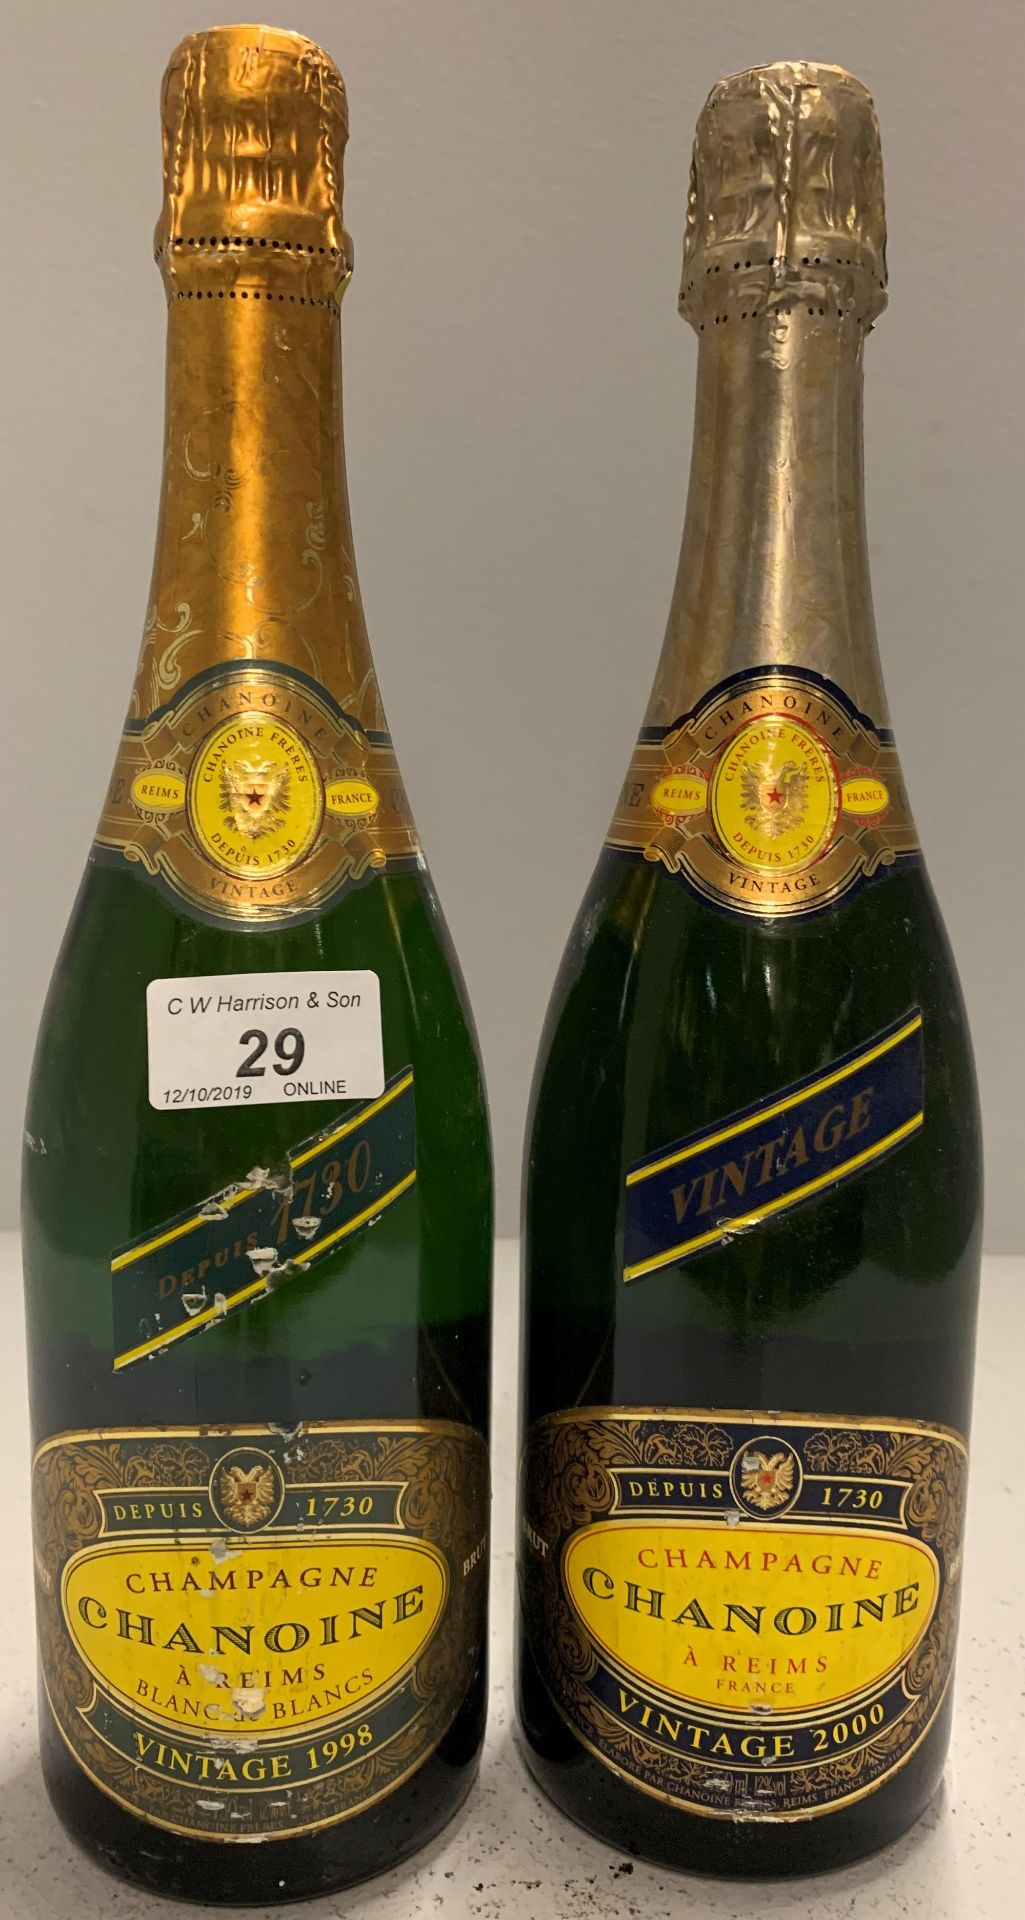 Lot 29 - 2 x 75cl bottles Chanoine Champagne vint